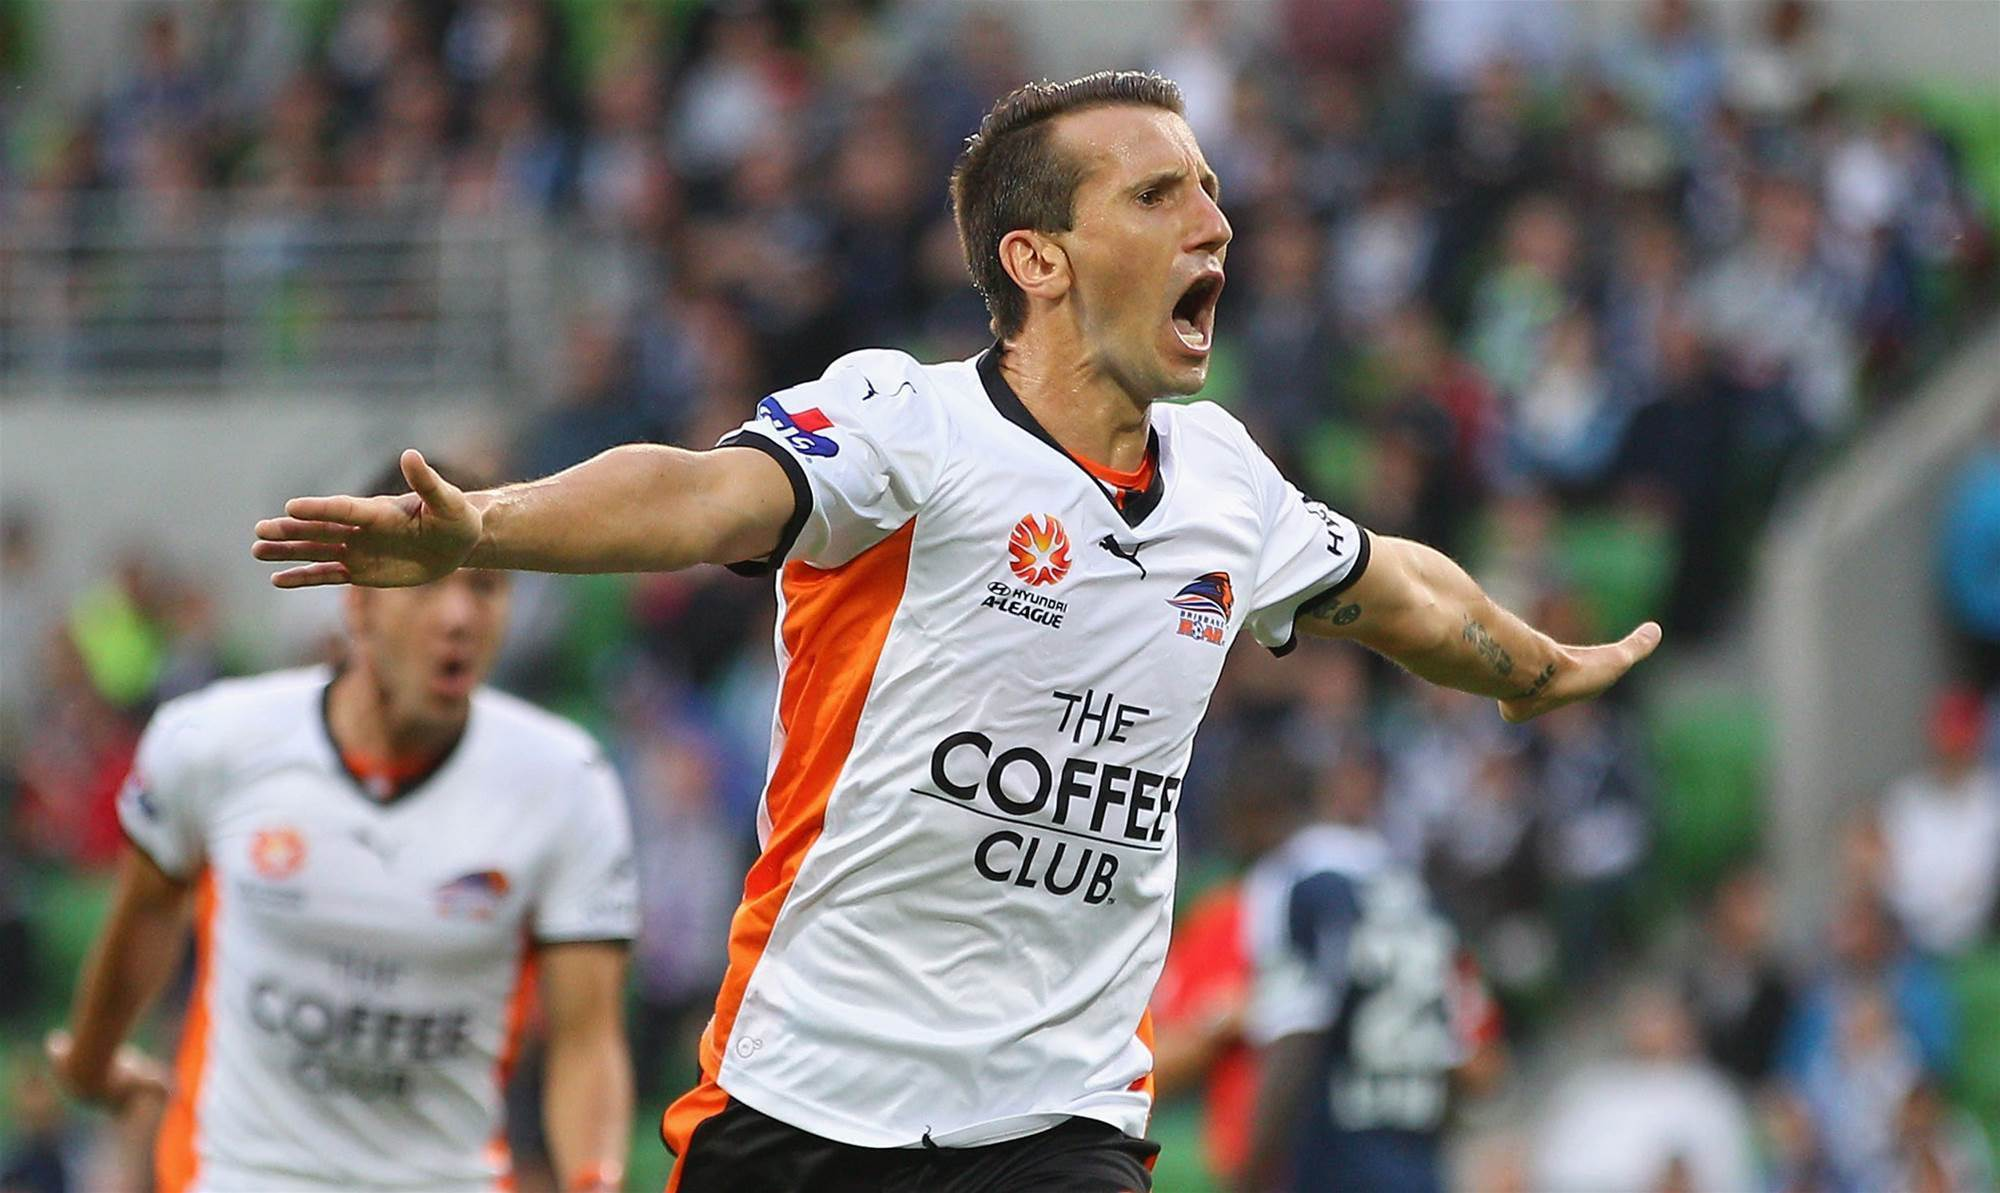 FFA: A moment's silence to honour Liam Miller